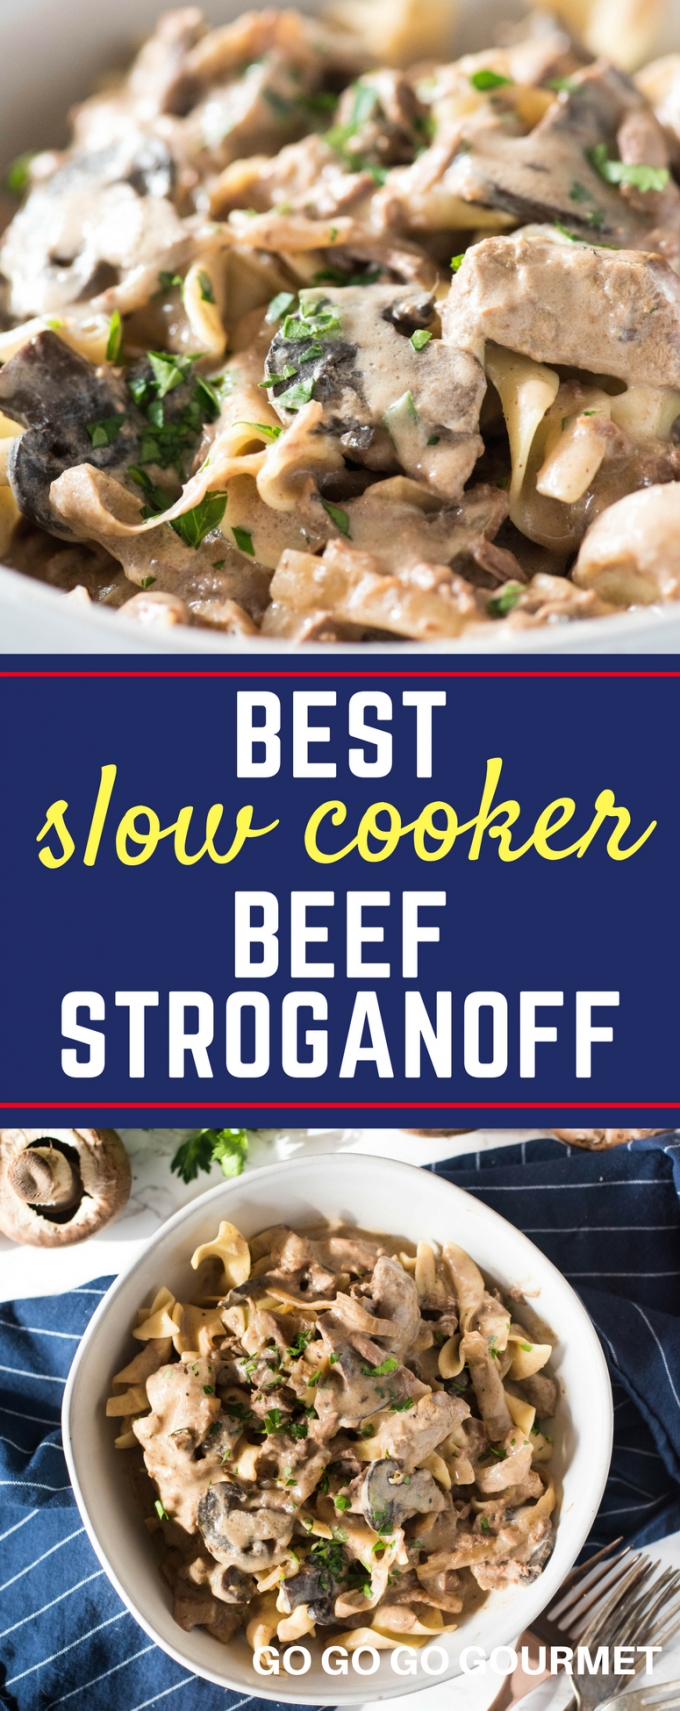 This slow cooker beef stroganoff recipe is the best! So easy to make, full of flavor and absolutely fork tender. No cream soups called for, but there's an adaptation if you want to use them! #gogogogourmet #beef #slowcooker #beefstroganoff #crockpot